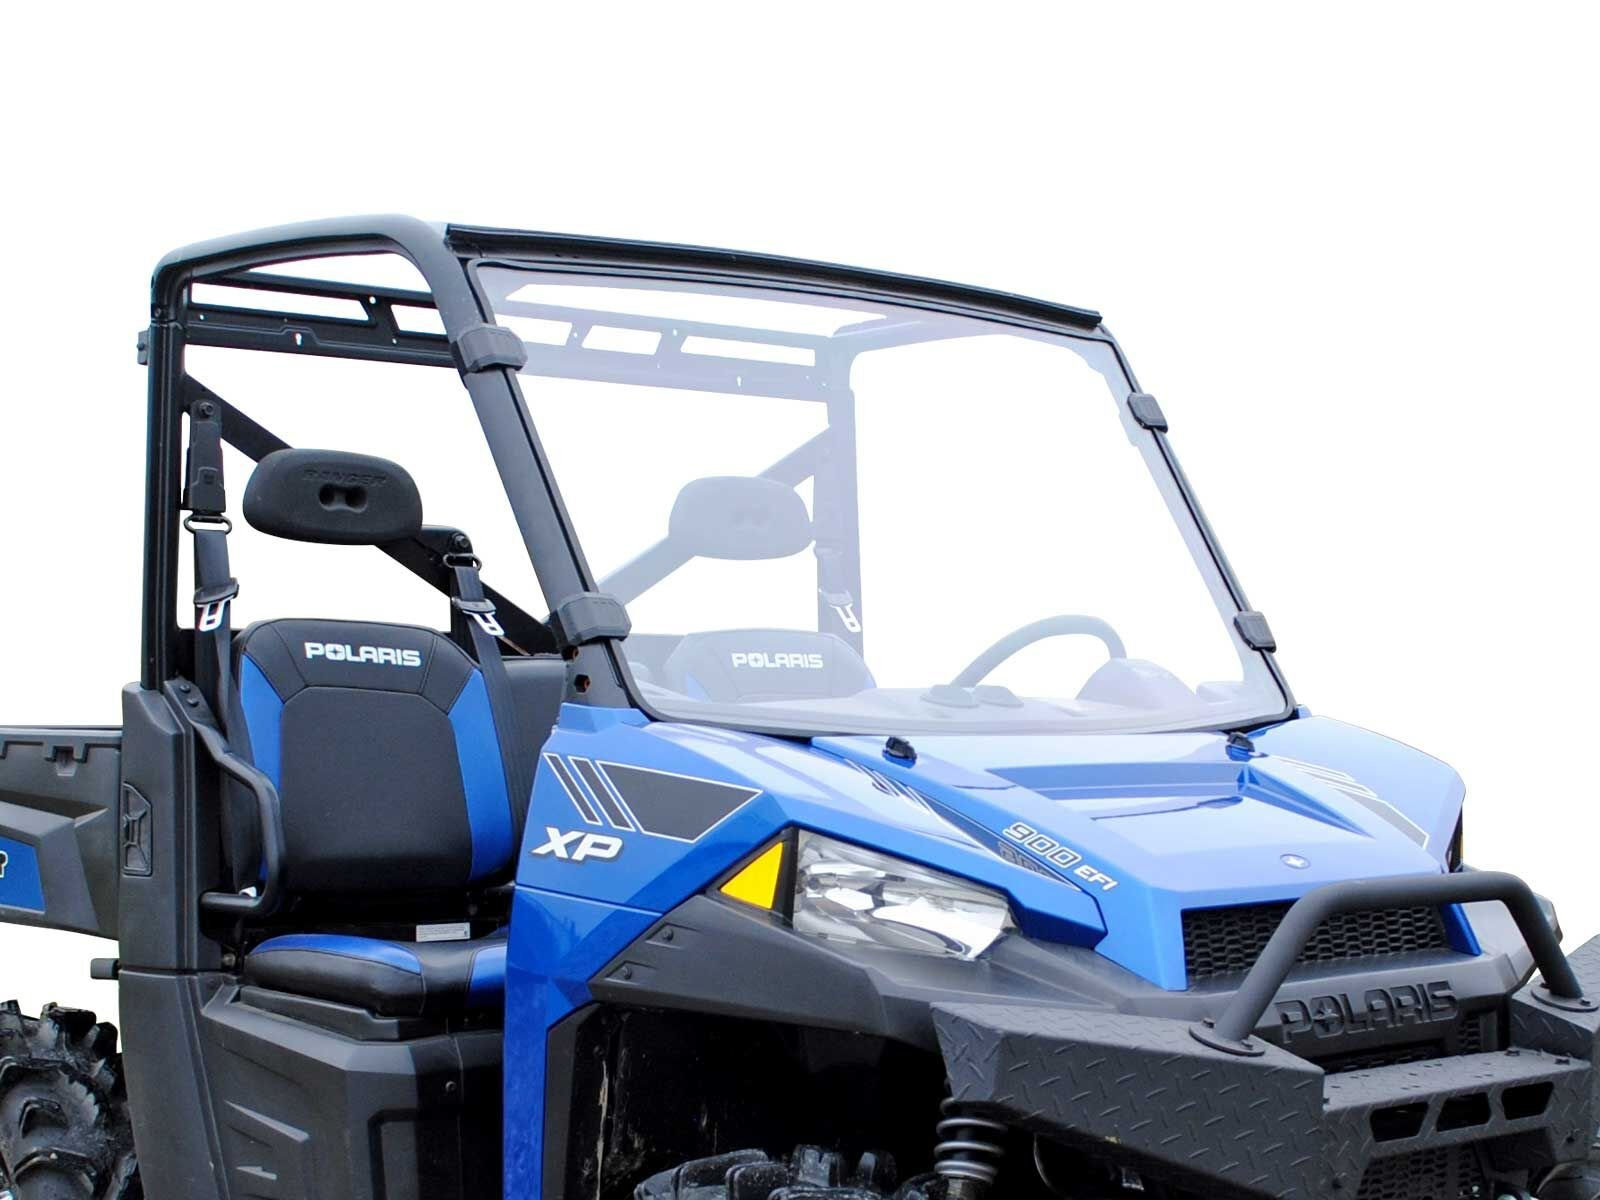 SuperATV Polaris Ranger Fullsize XP 570 / 570 / 900 / 900 Crew / 1000 Full Windshield (Clear, Standard)